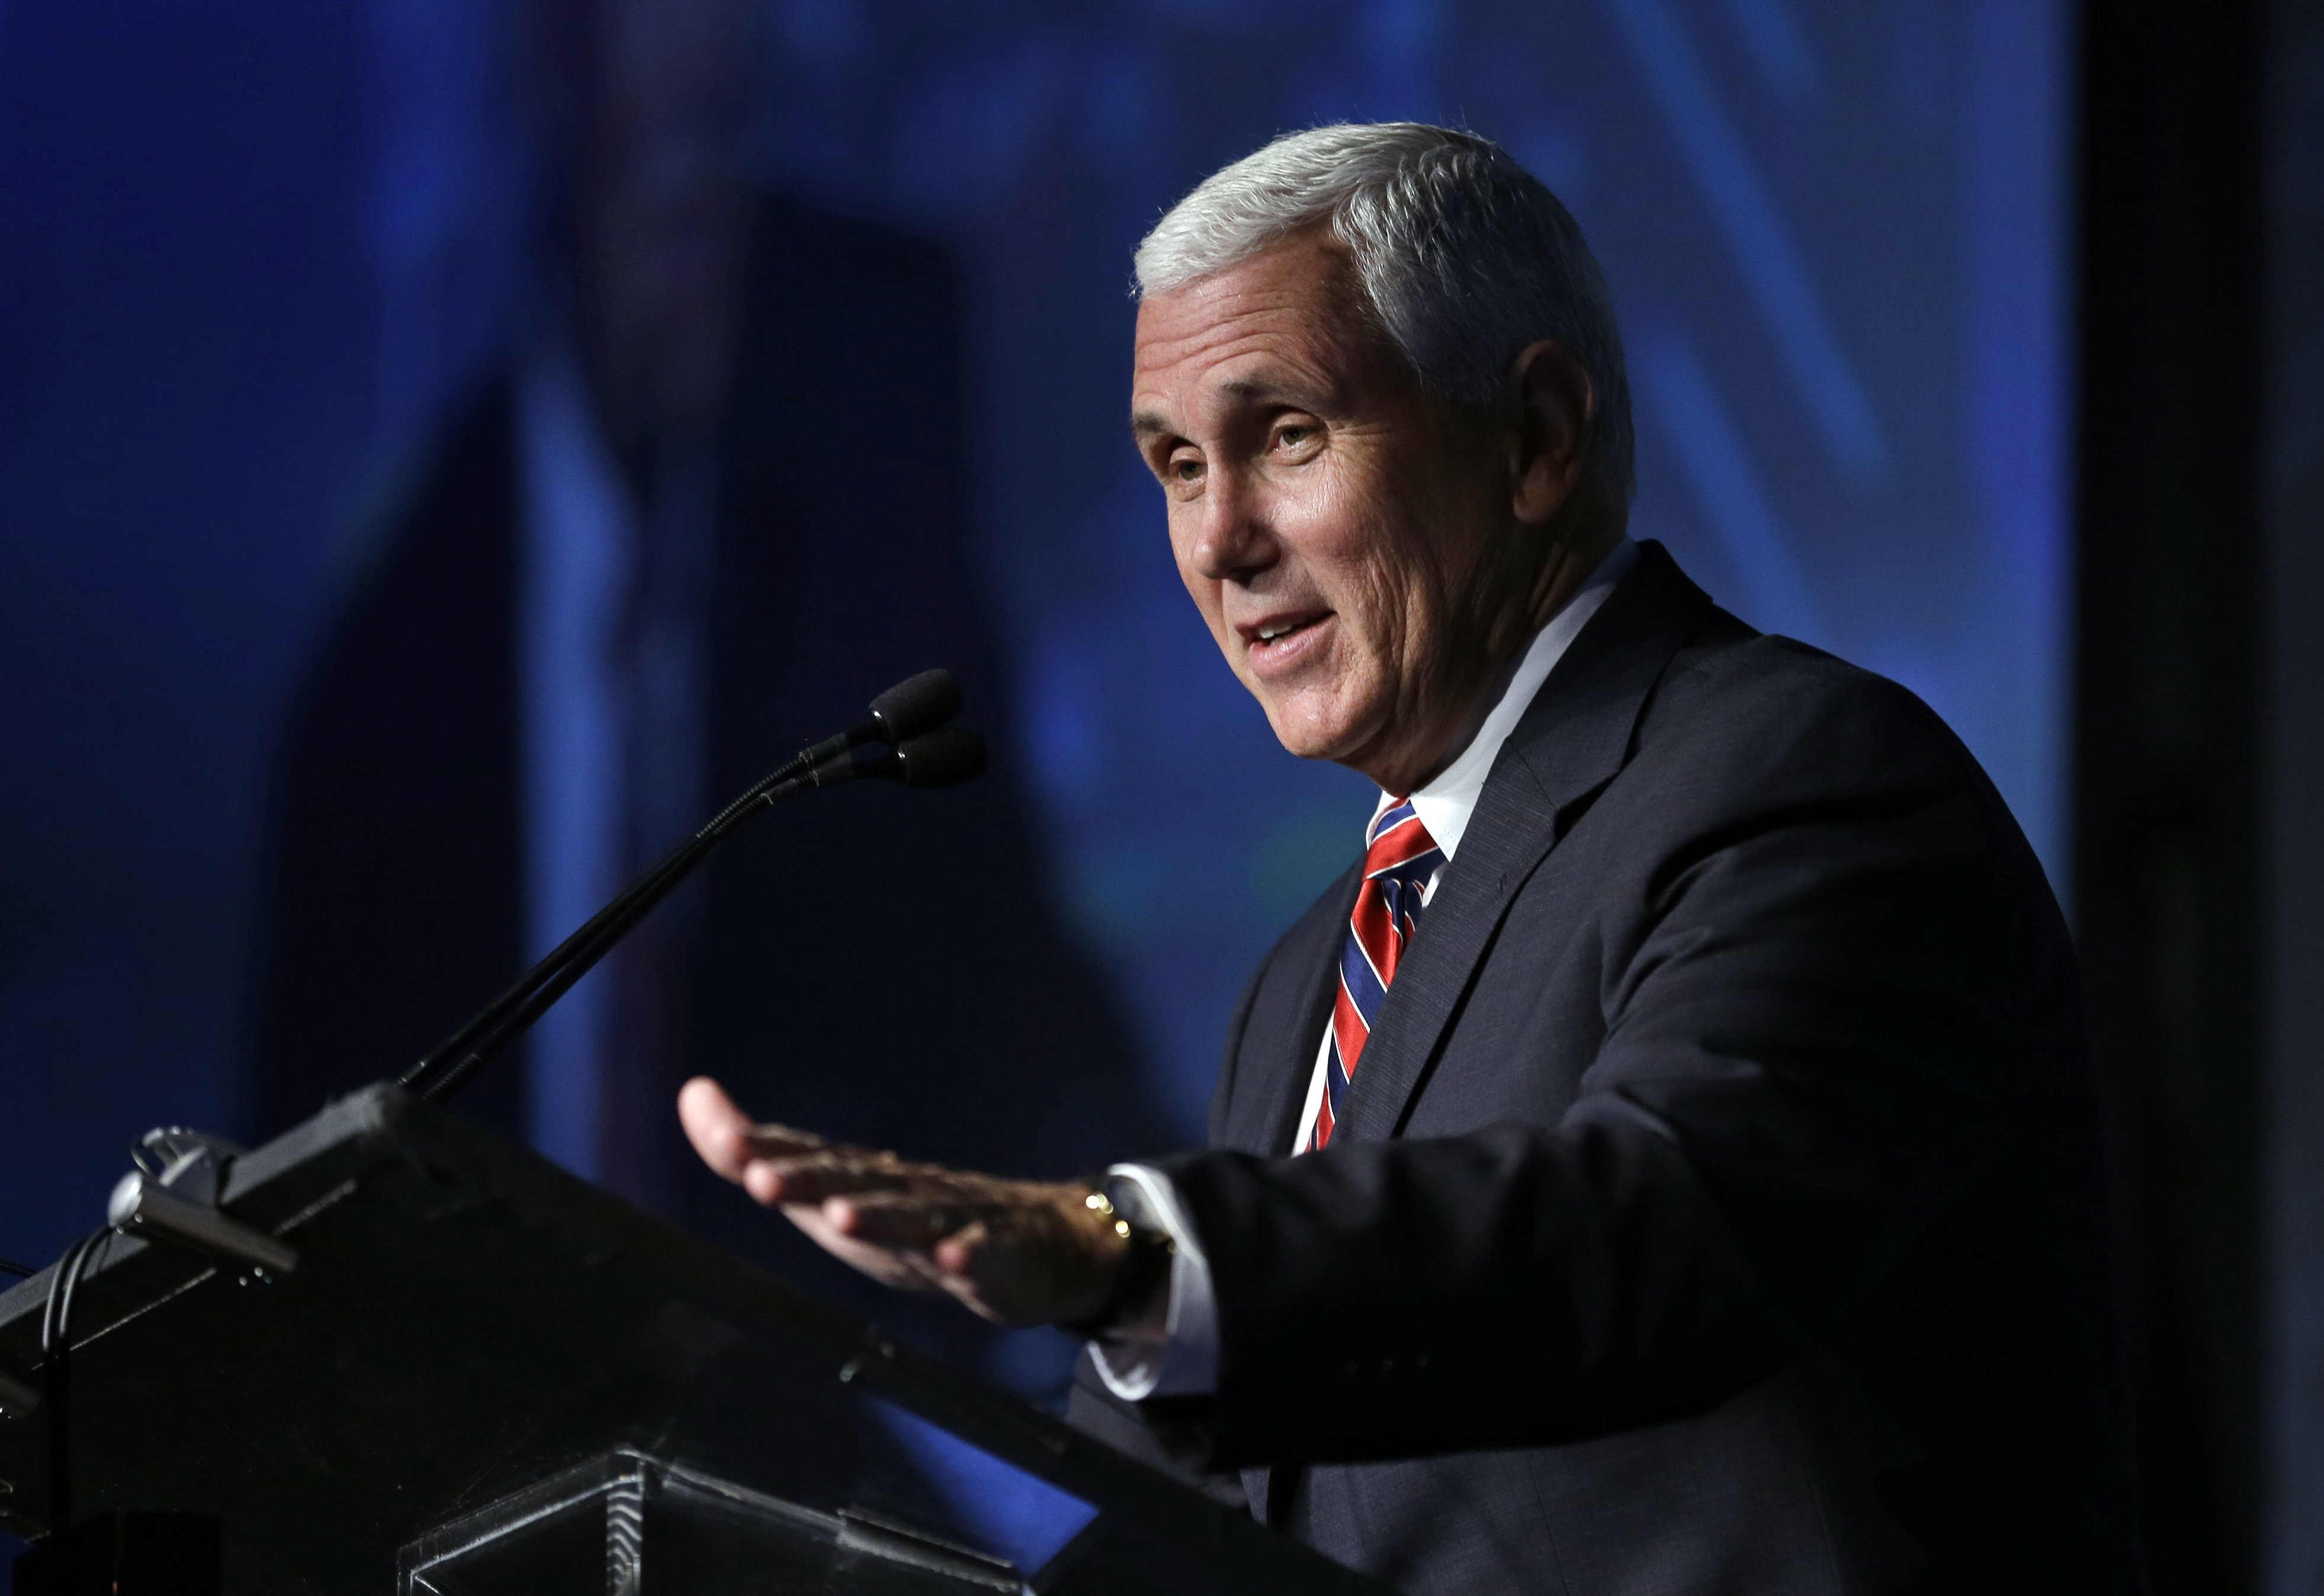 Republican vice presidential candidate, Indiana Gov. Mike Pence speaks at the American Legislative Exchange Council annual meeting in Indianapolis, July 29, 2016.